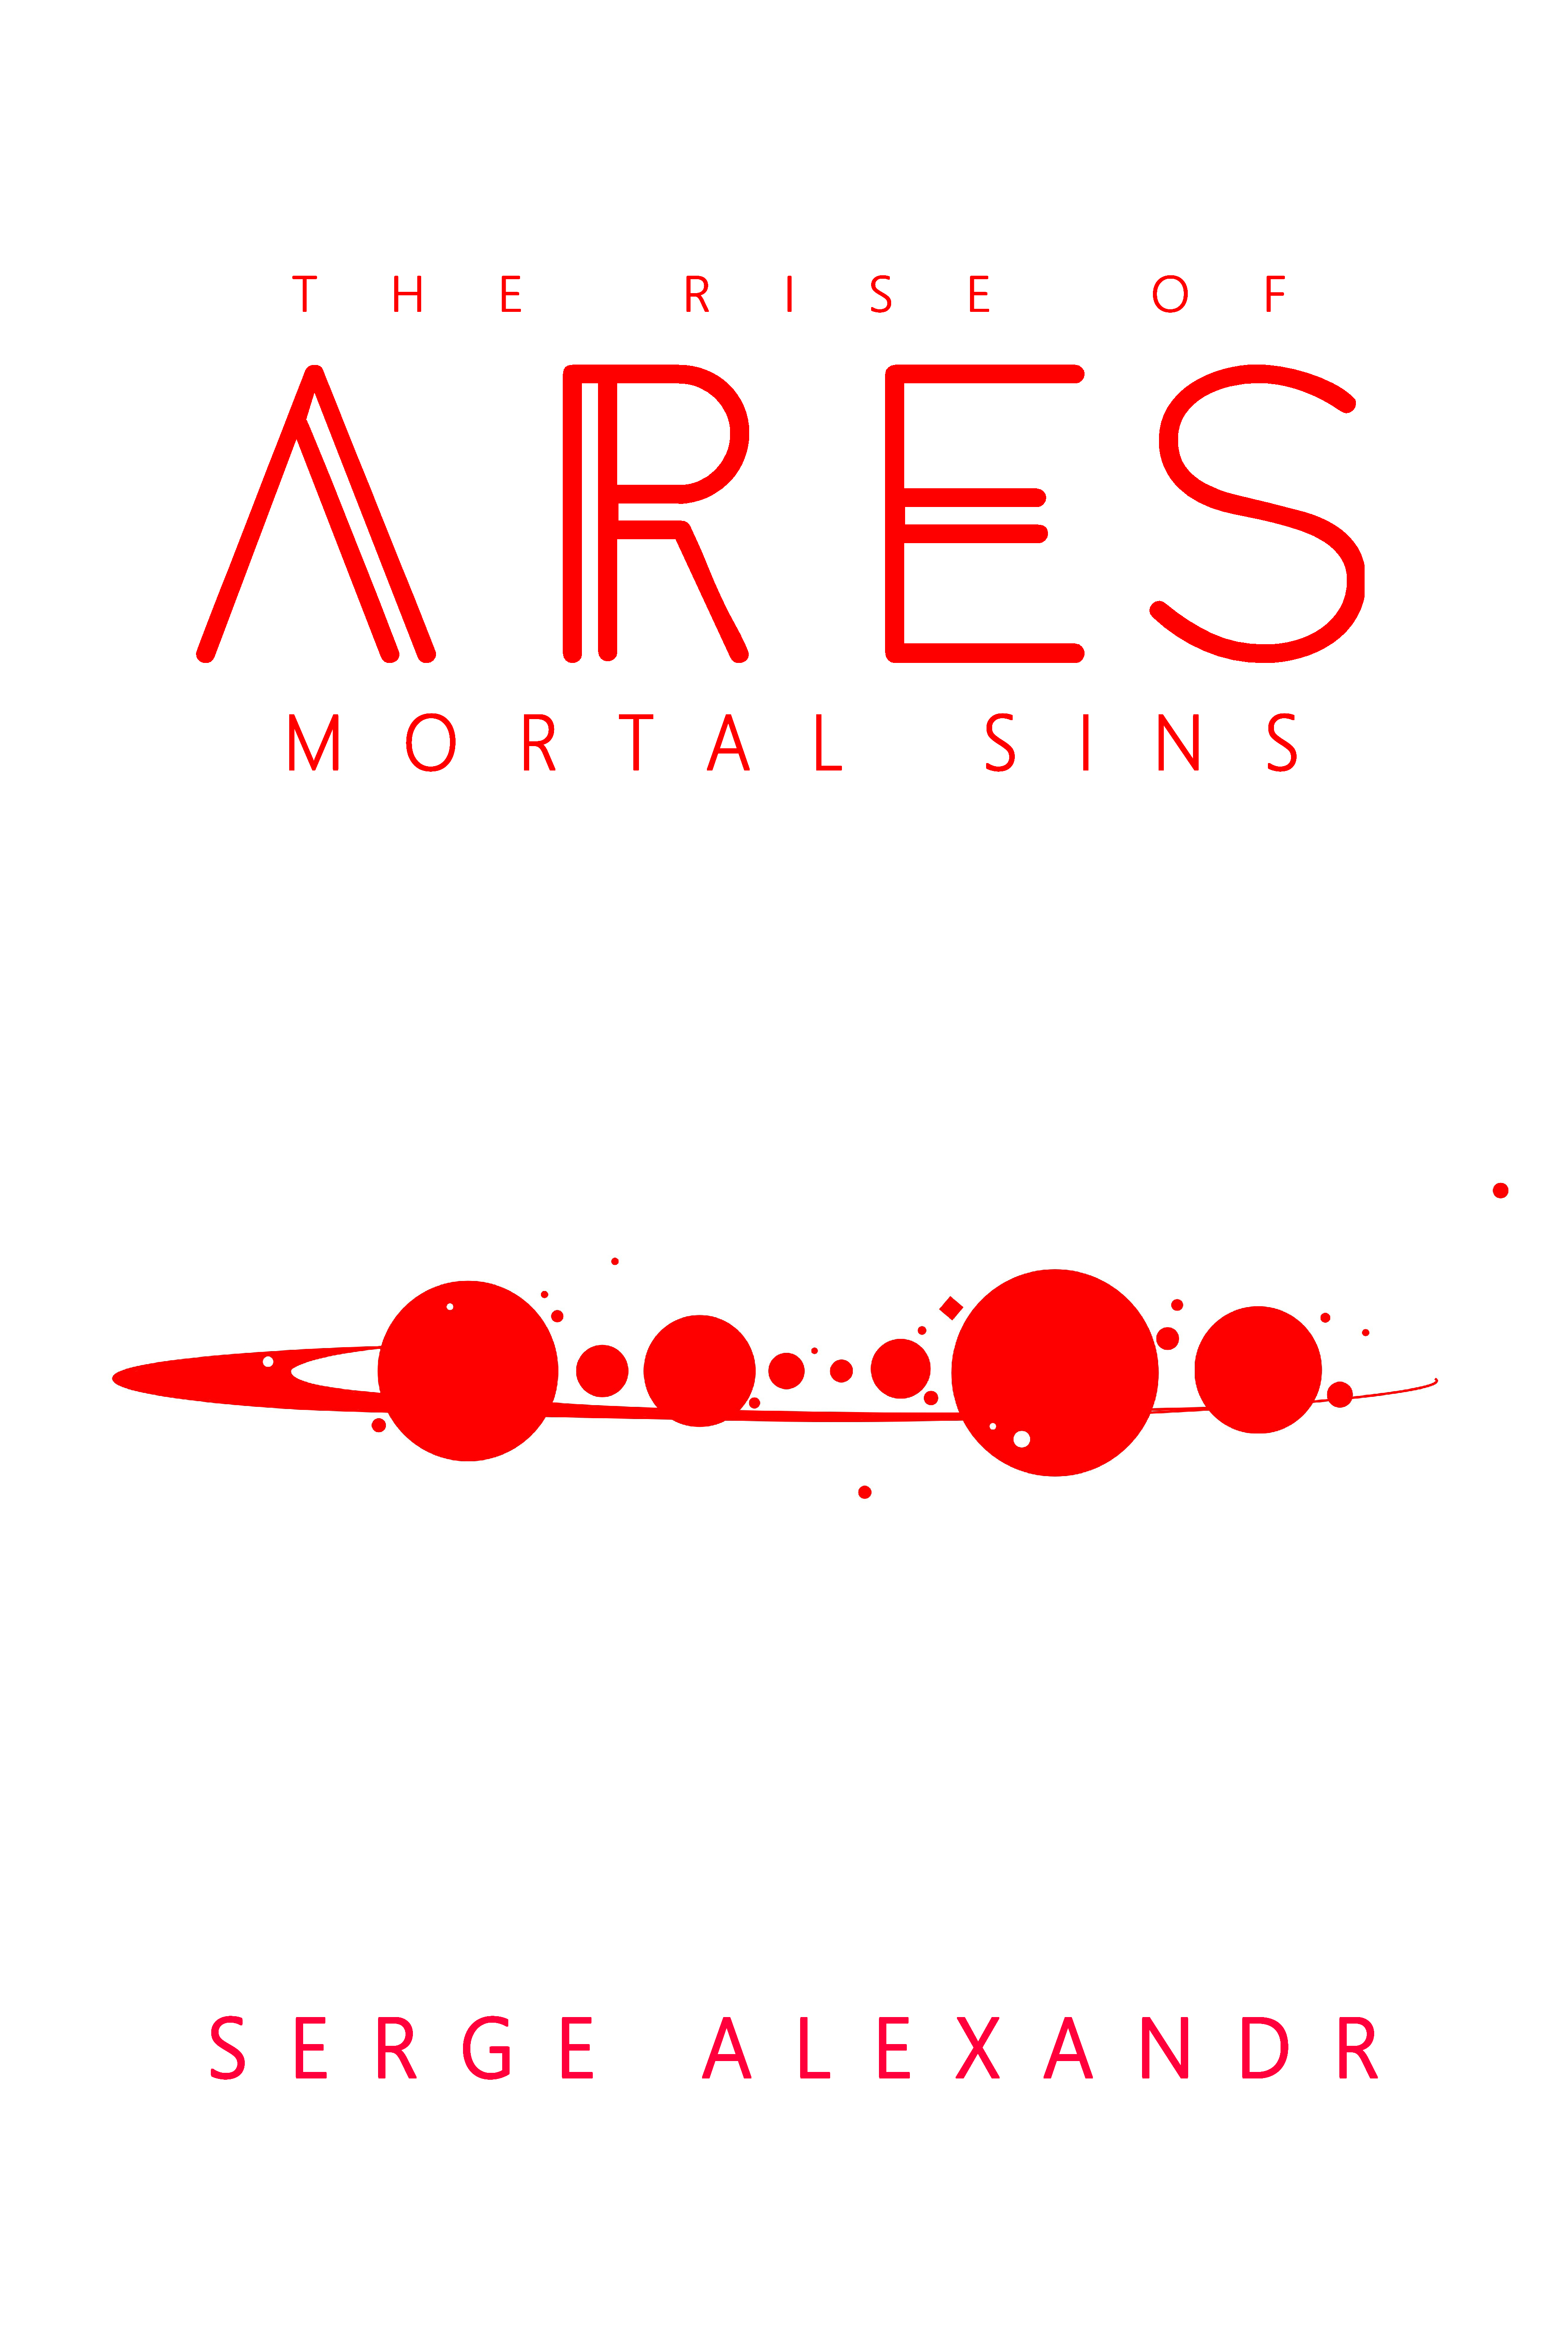 A future that will shock, inspire, and thrill: The Rise of Ares